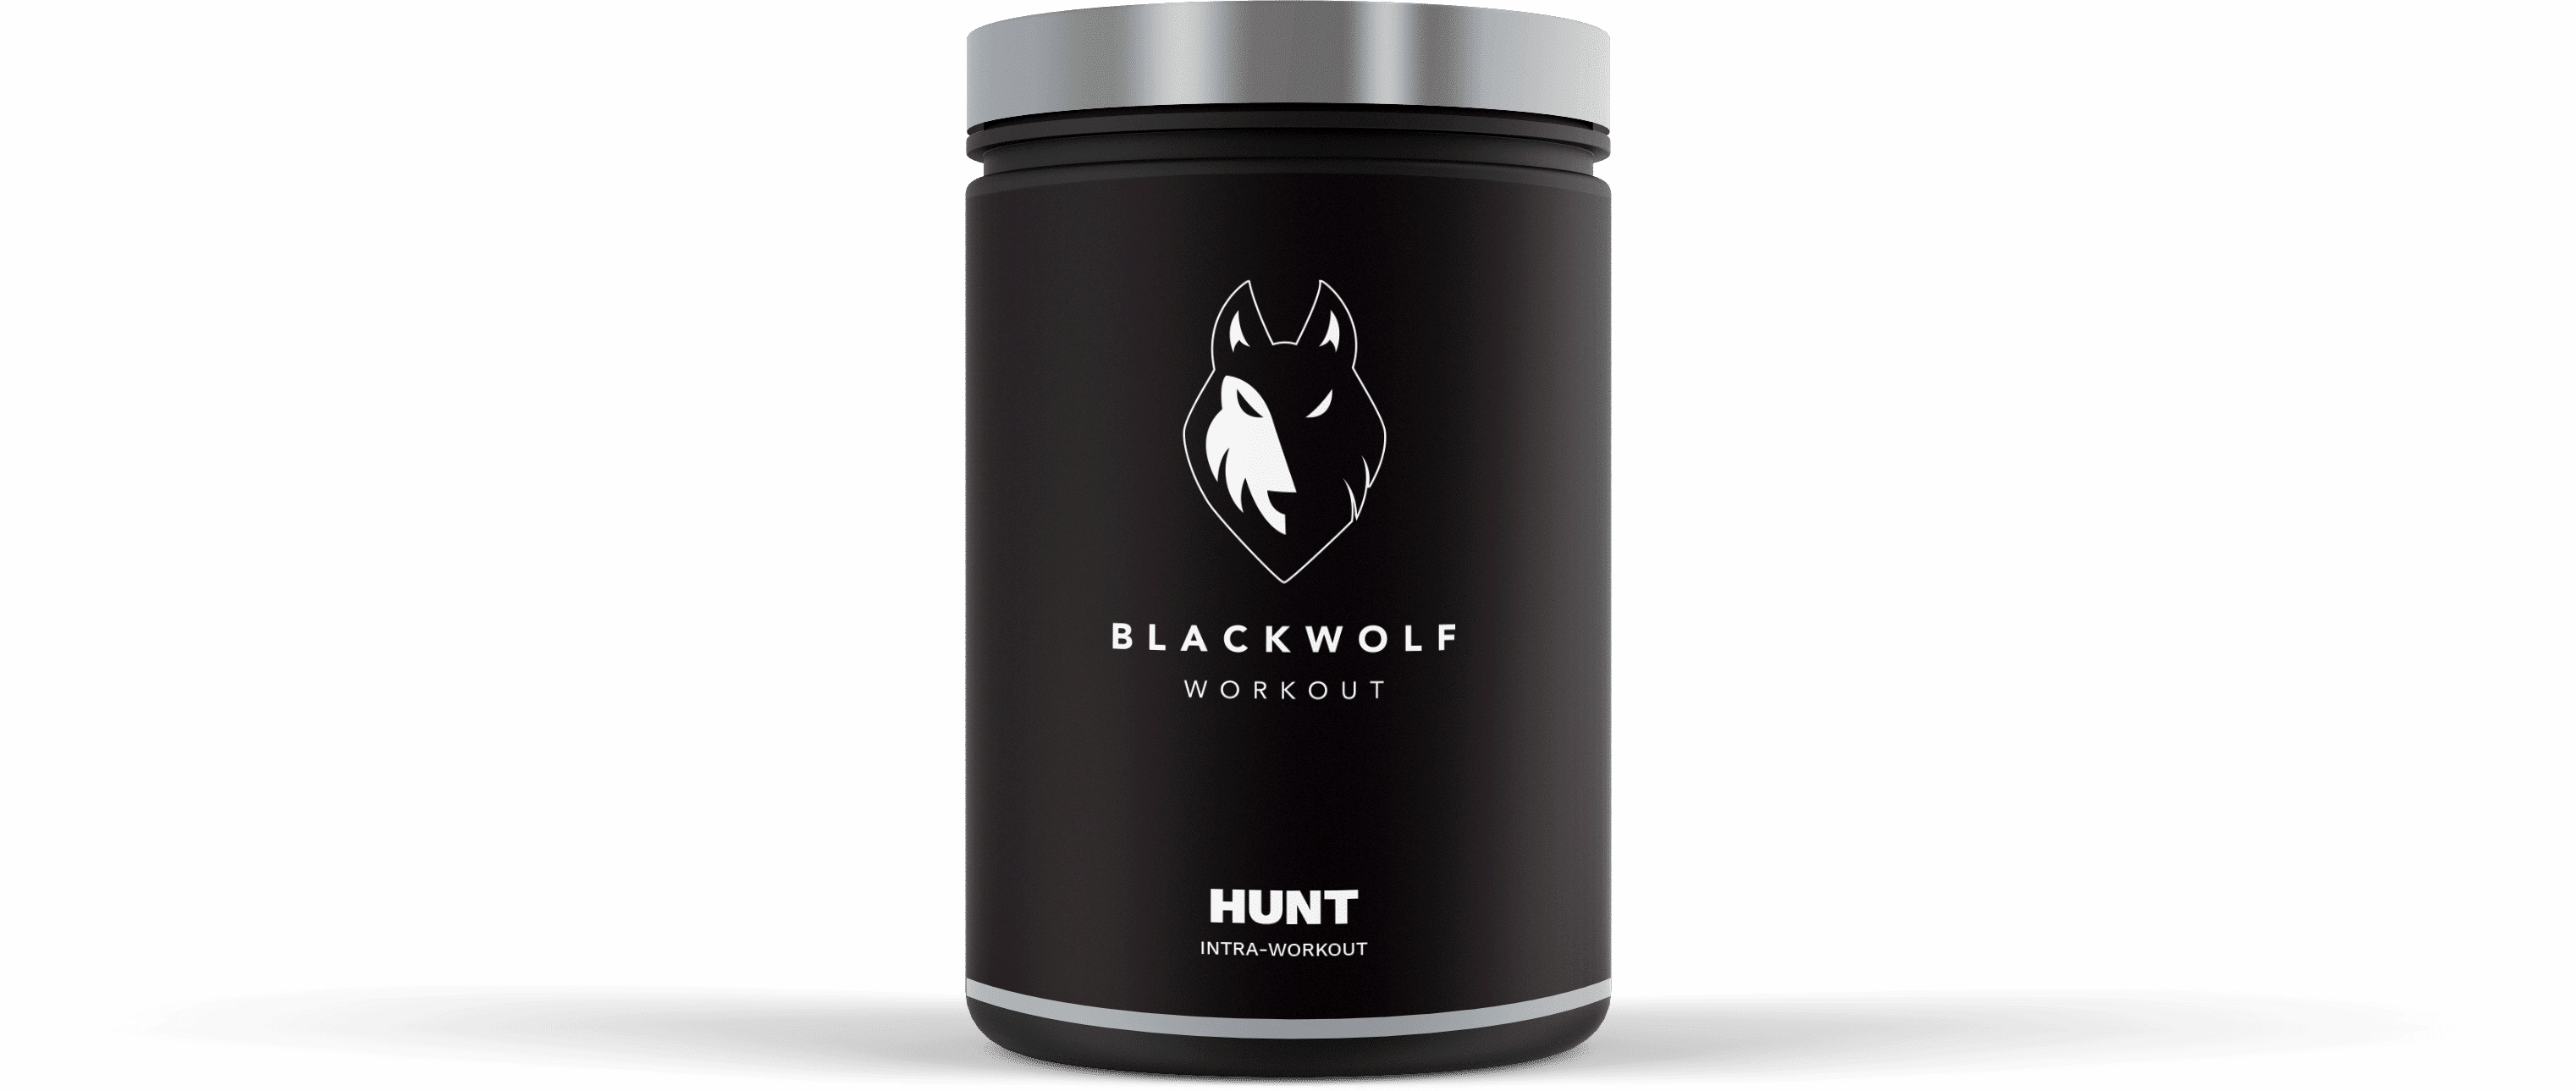 Blackwolf-Workout-Avis